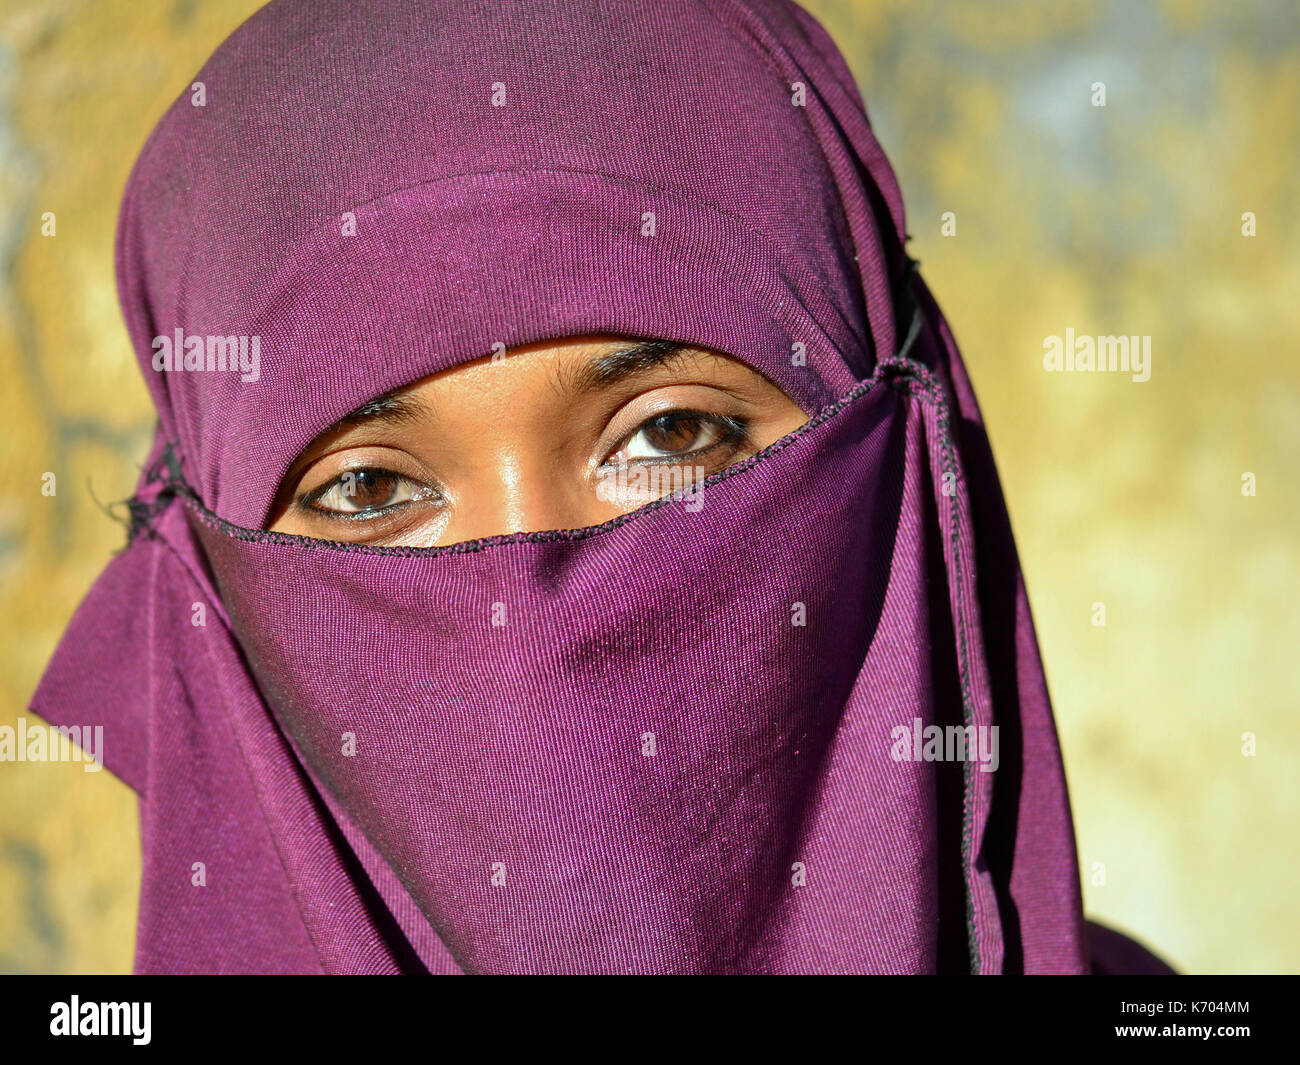 Young Indian Muslimah with violet niqab; Junagadh, Gujarat, Western India - Stock Image